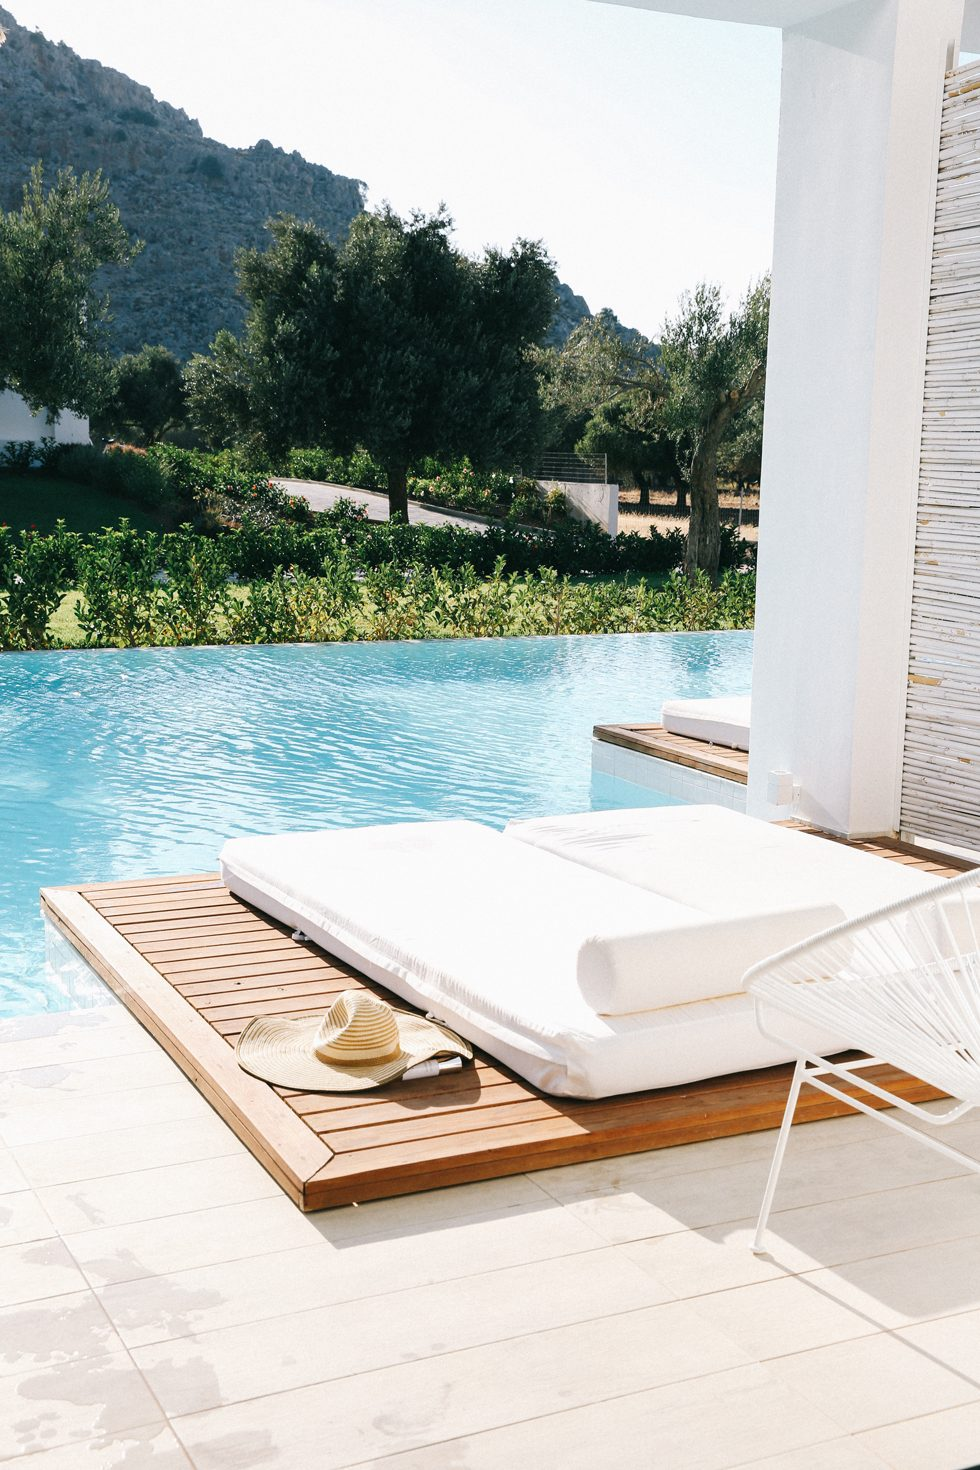 Sunbeds-in-the-pool